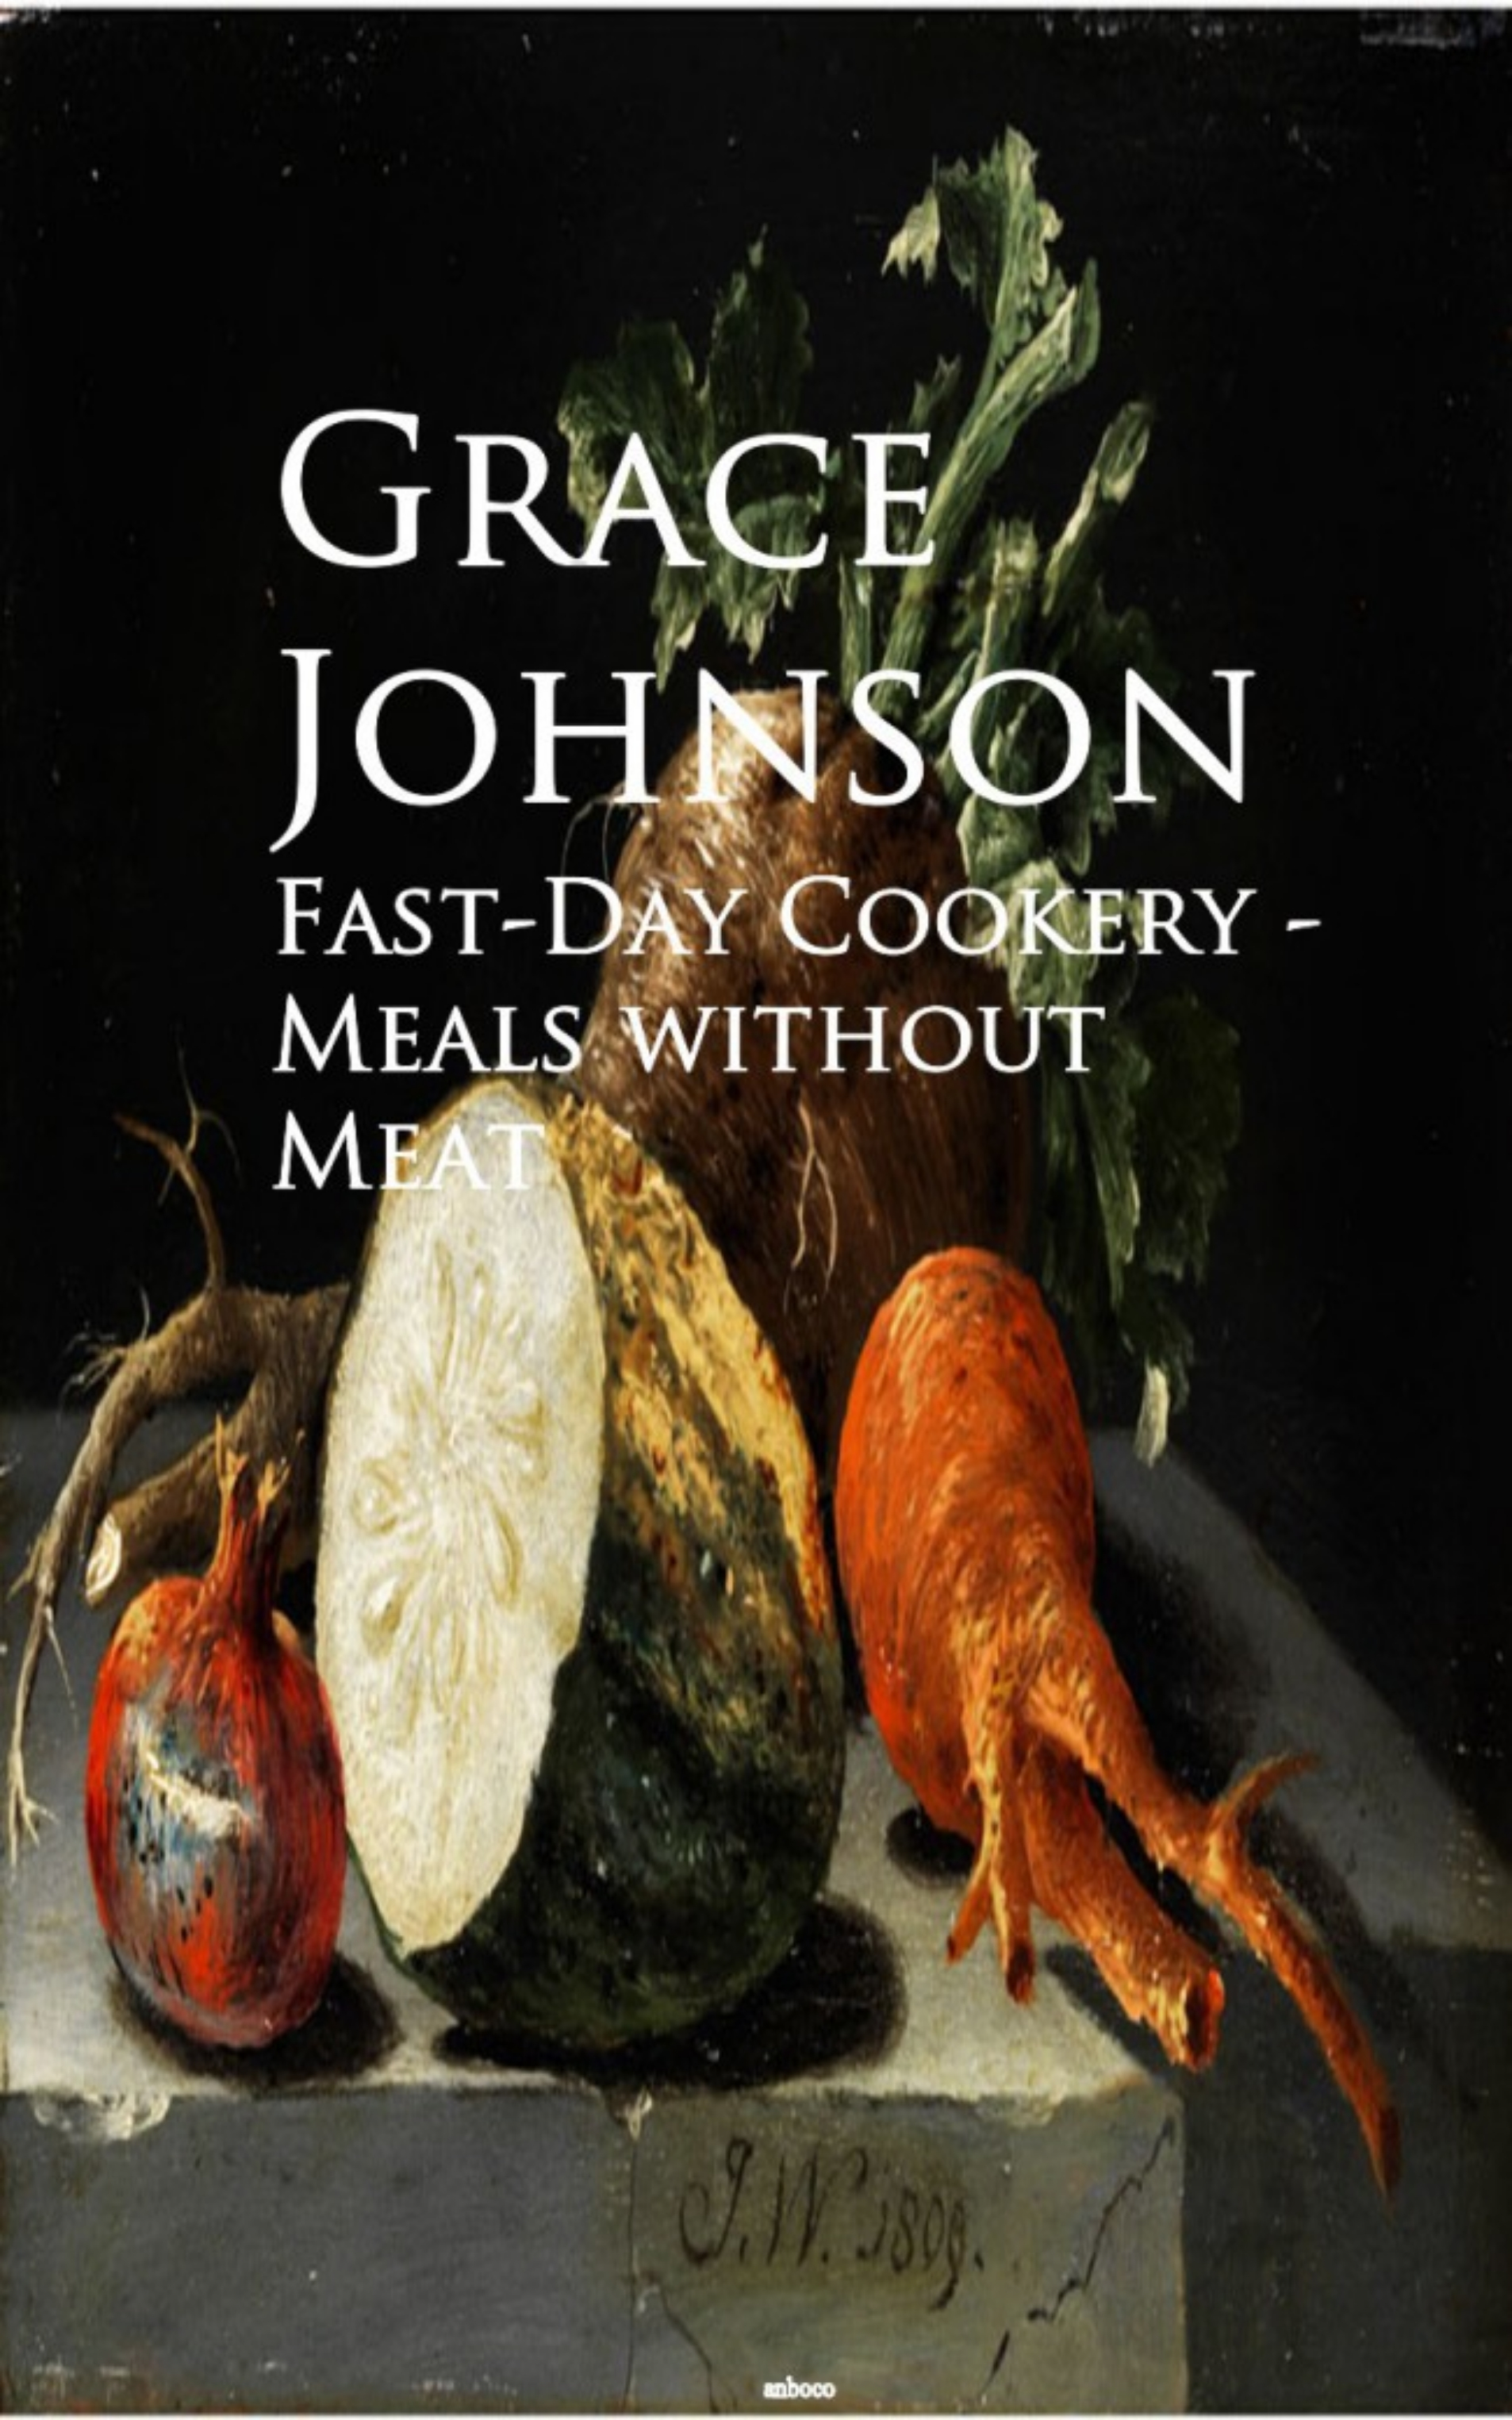 Grace Johnson Fast-Day Cookery - Meals without Meat mary berry cookery course